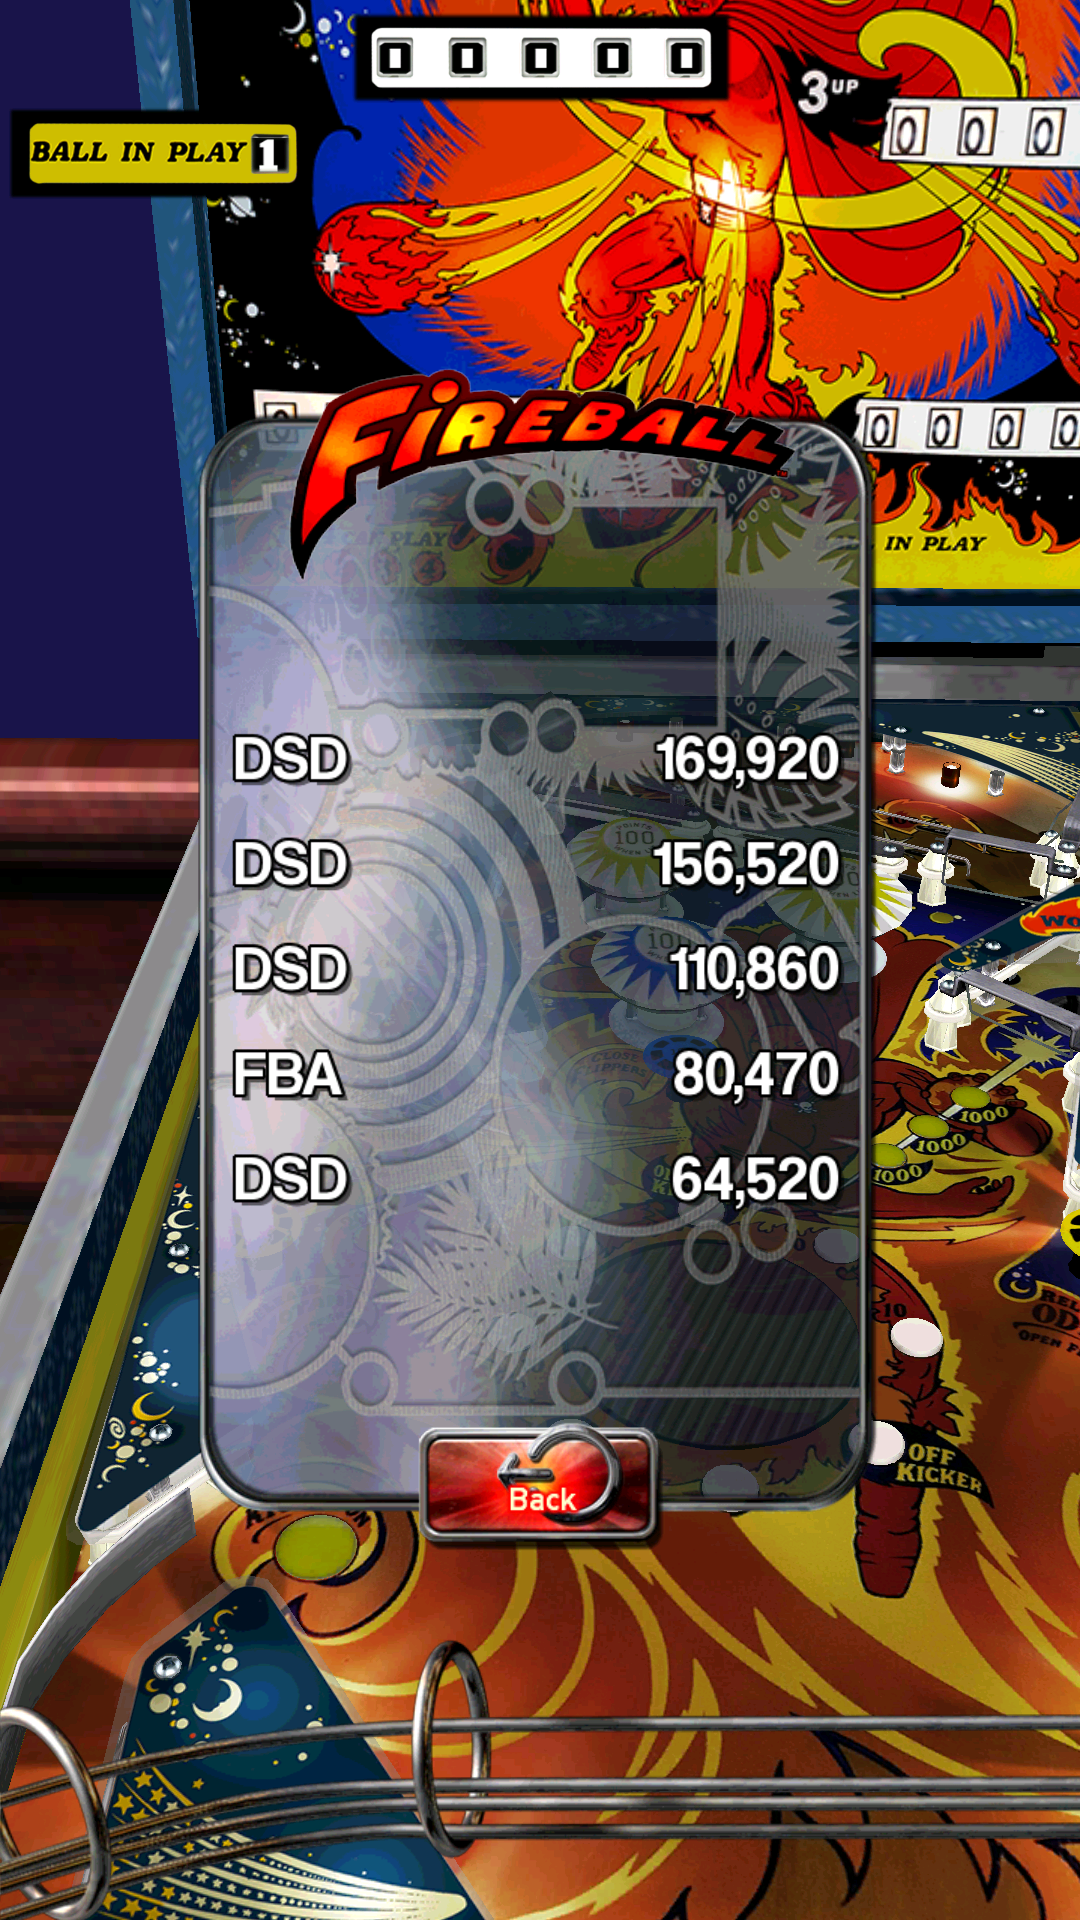 jondsd: Pinball Arcade: Fireball (Android) 169,920 points on 2016-03-10 15:55:17